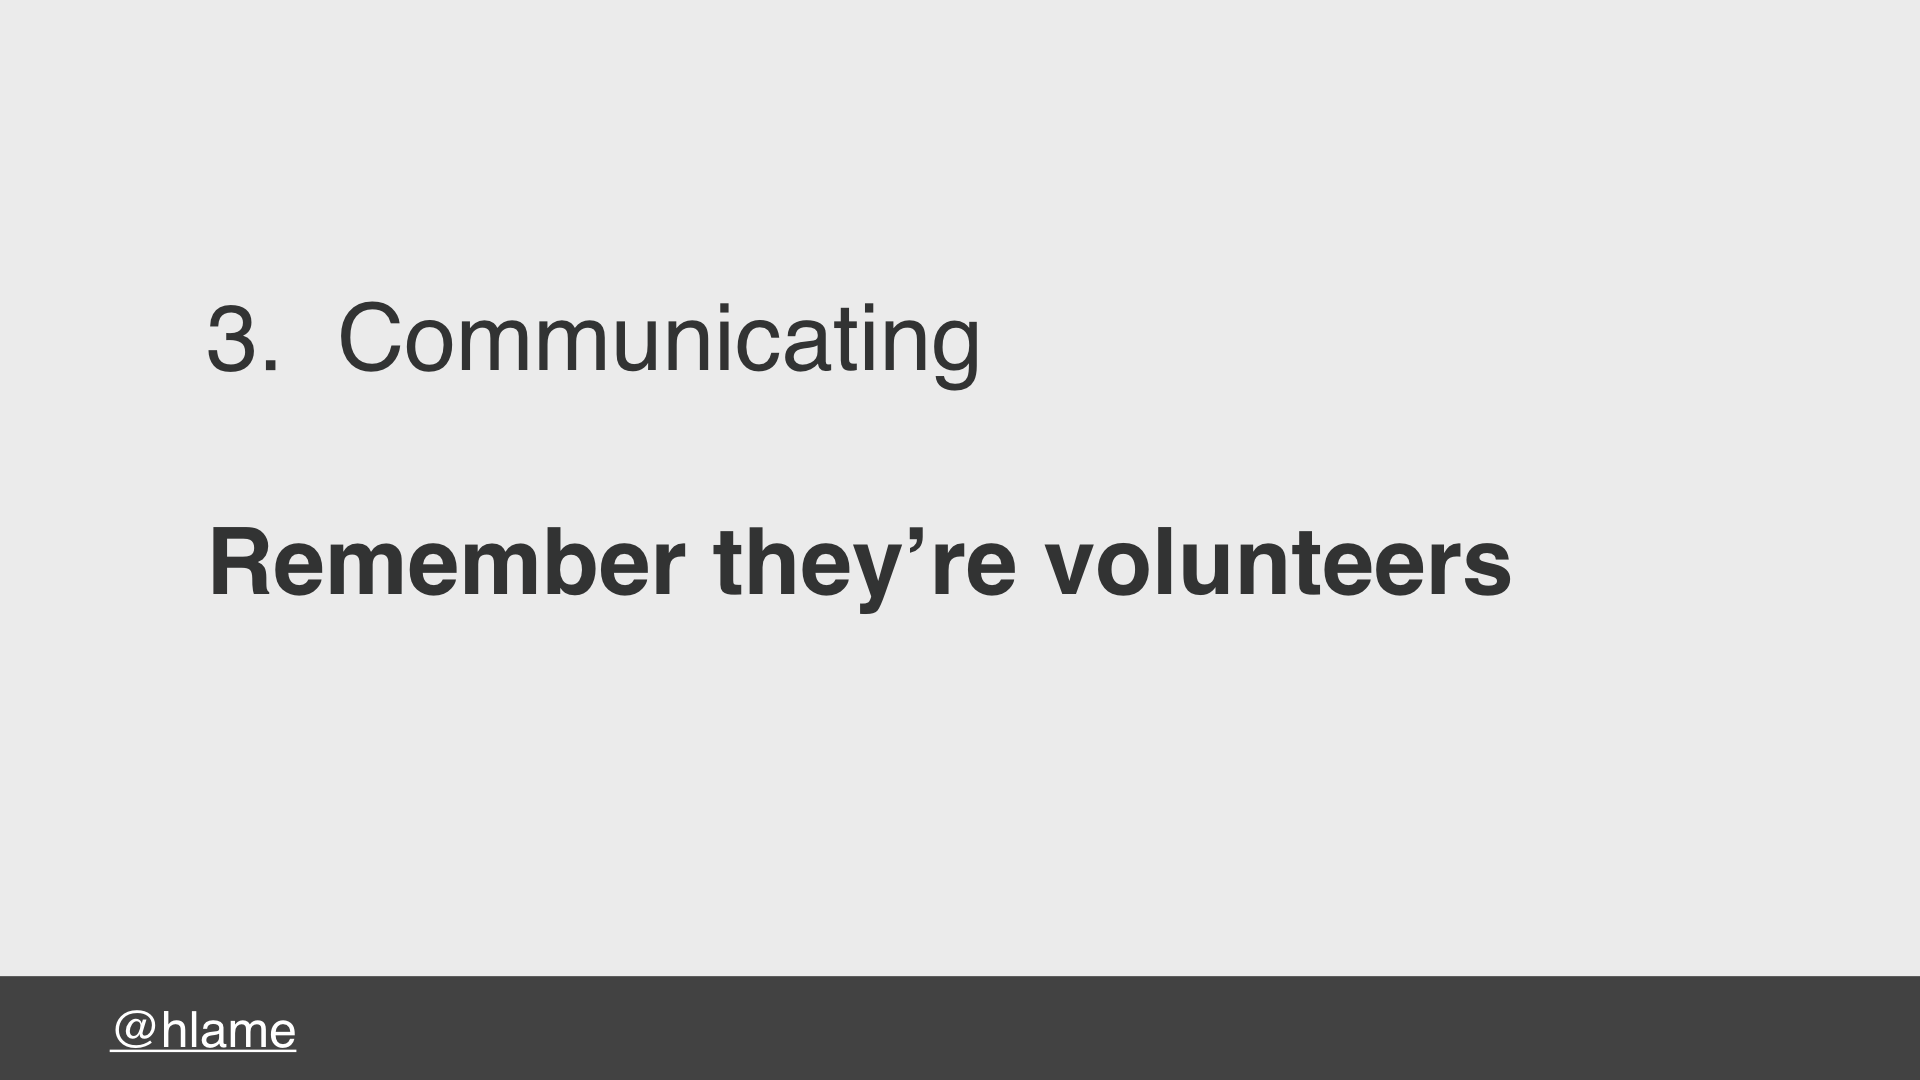 text: 3. Communicating, Remember they're volunteers